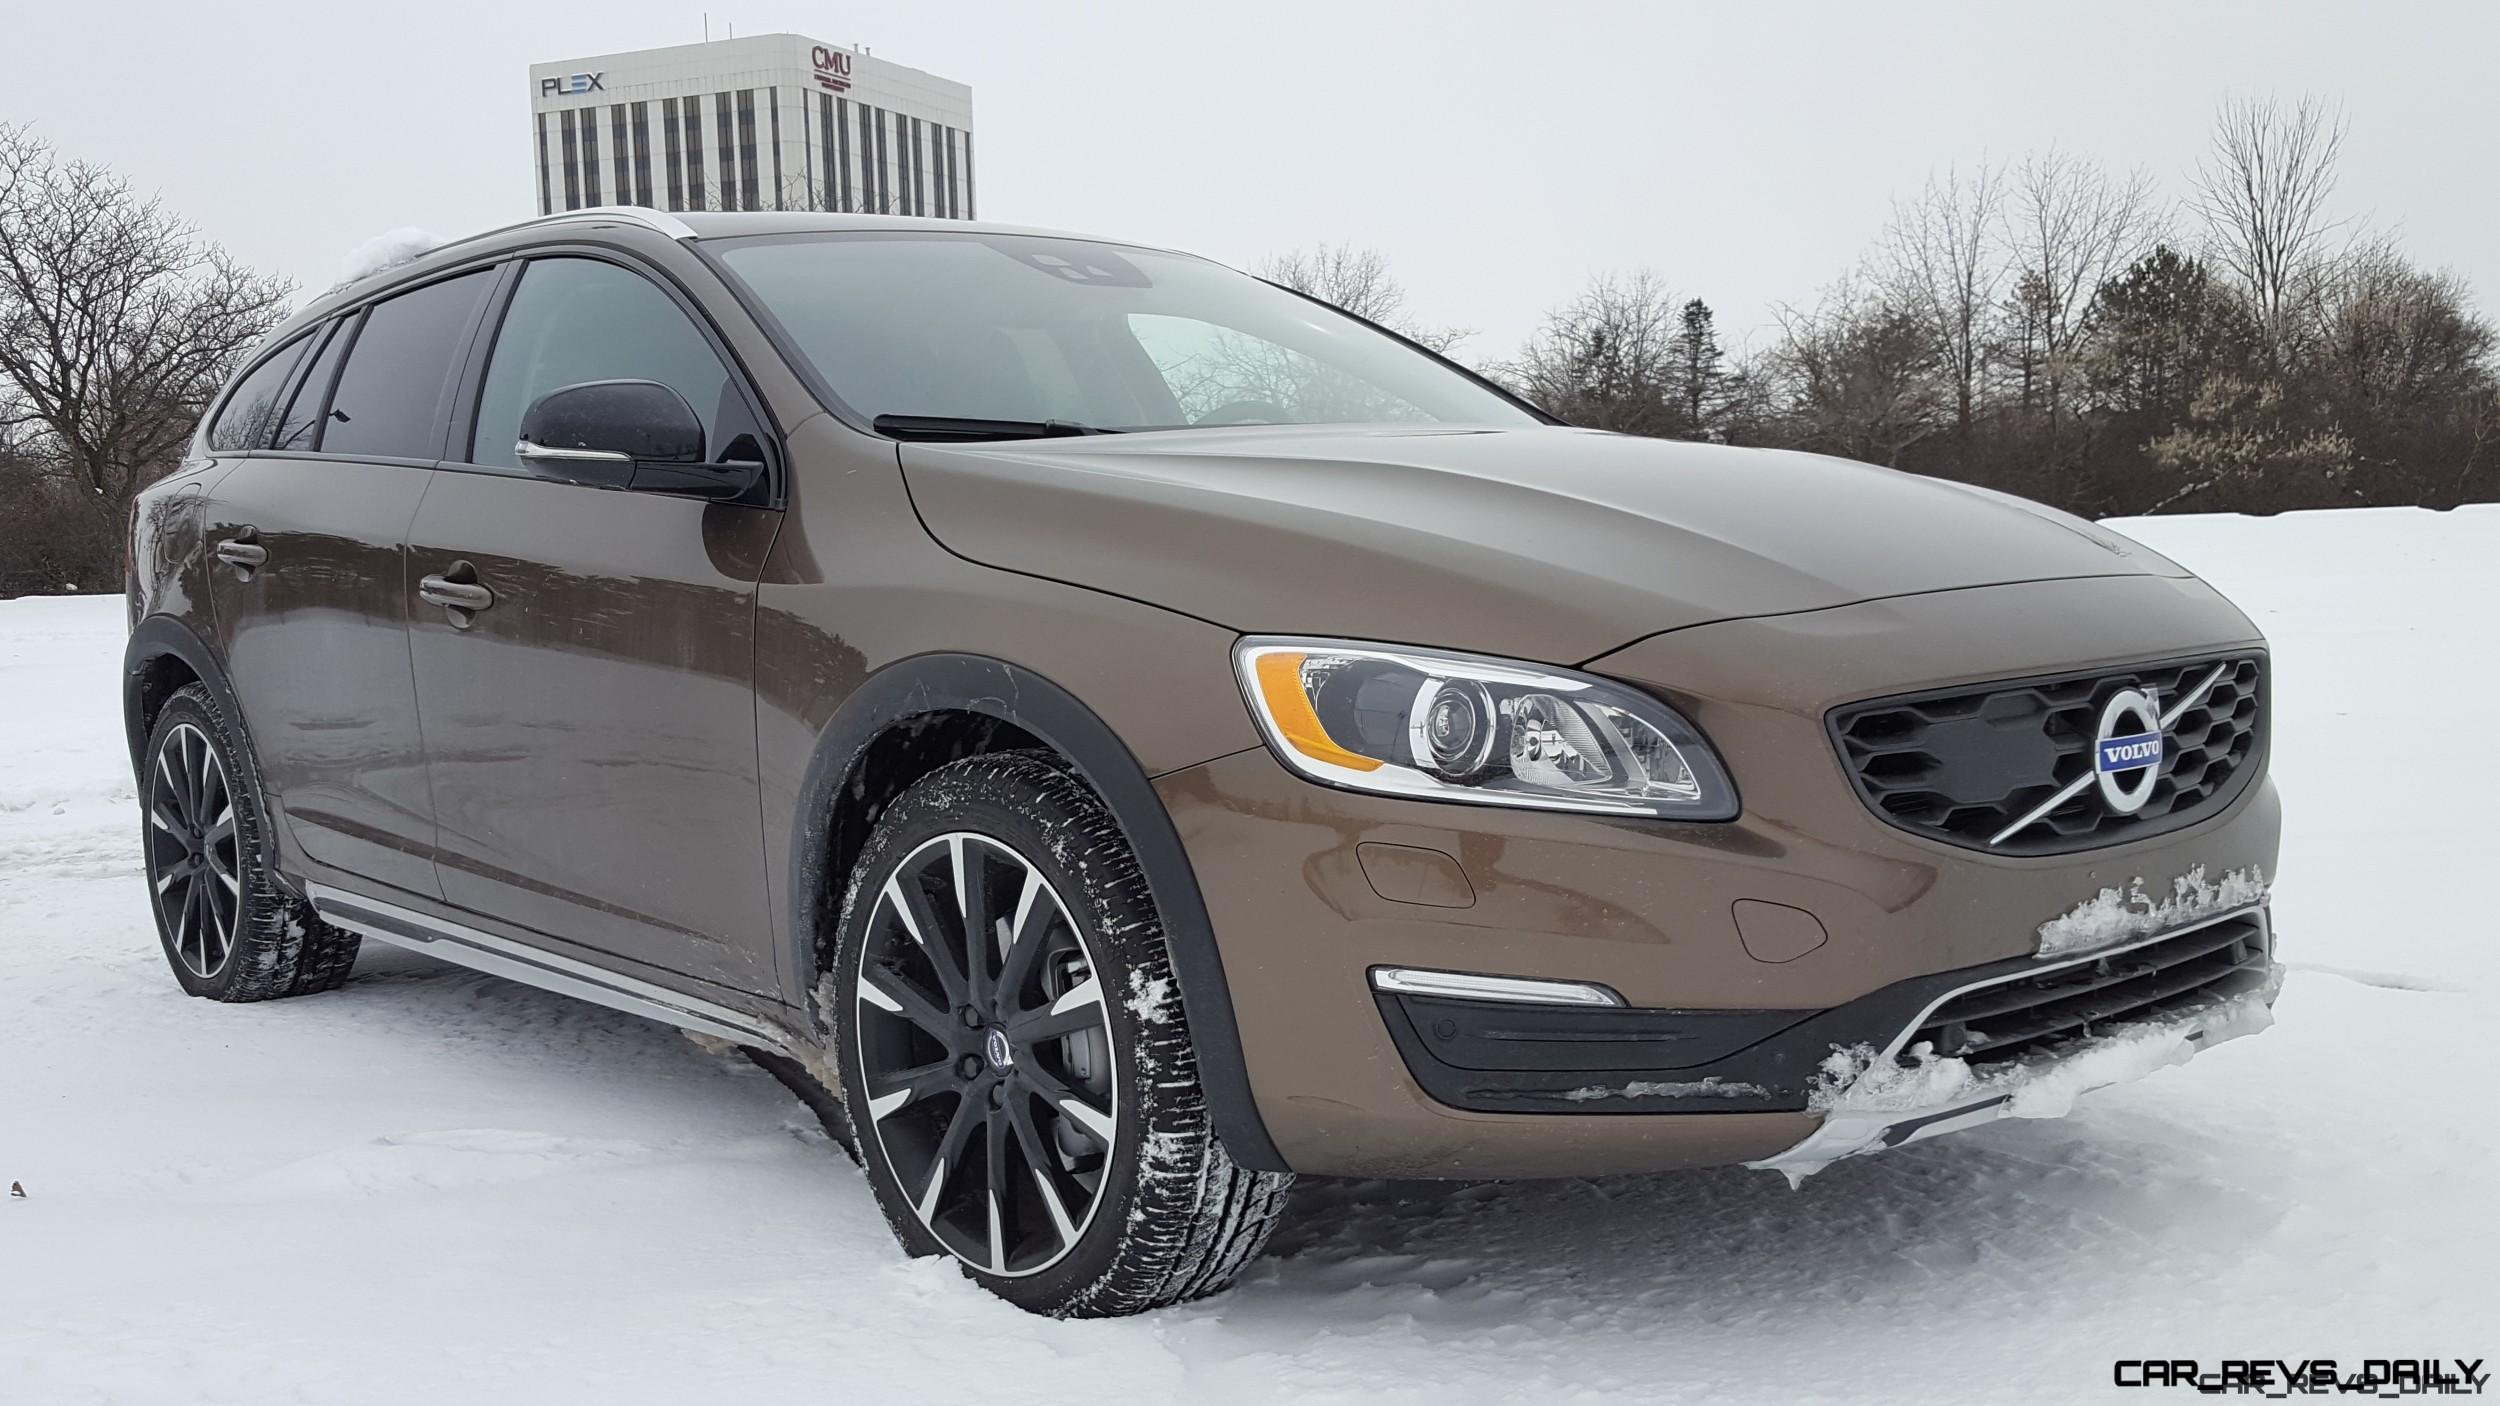 road test review 2017 volvo v60 cross country platinum by carl malek. Black Bedroom Furniture Sets. Home Design Ideas